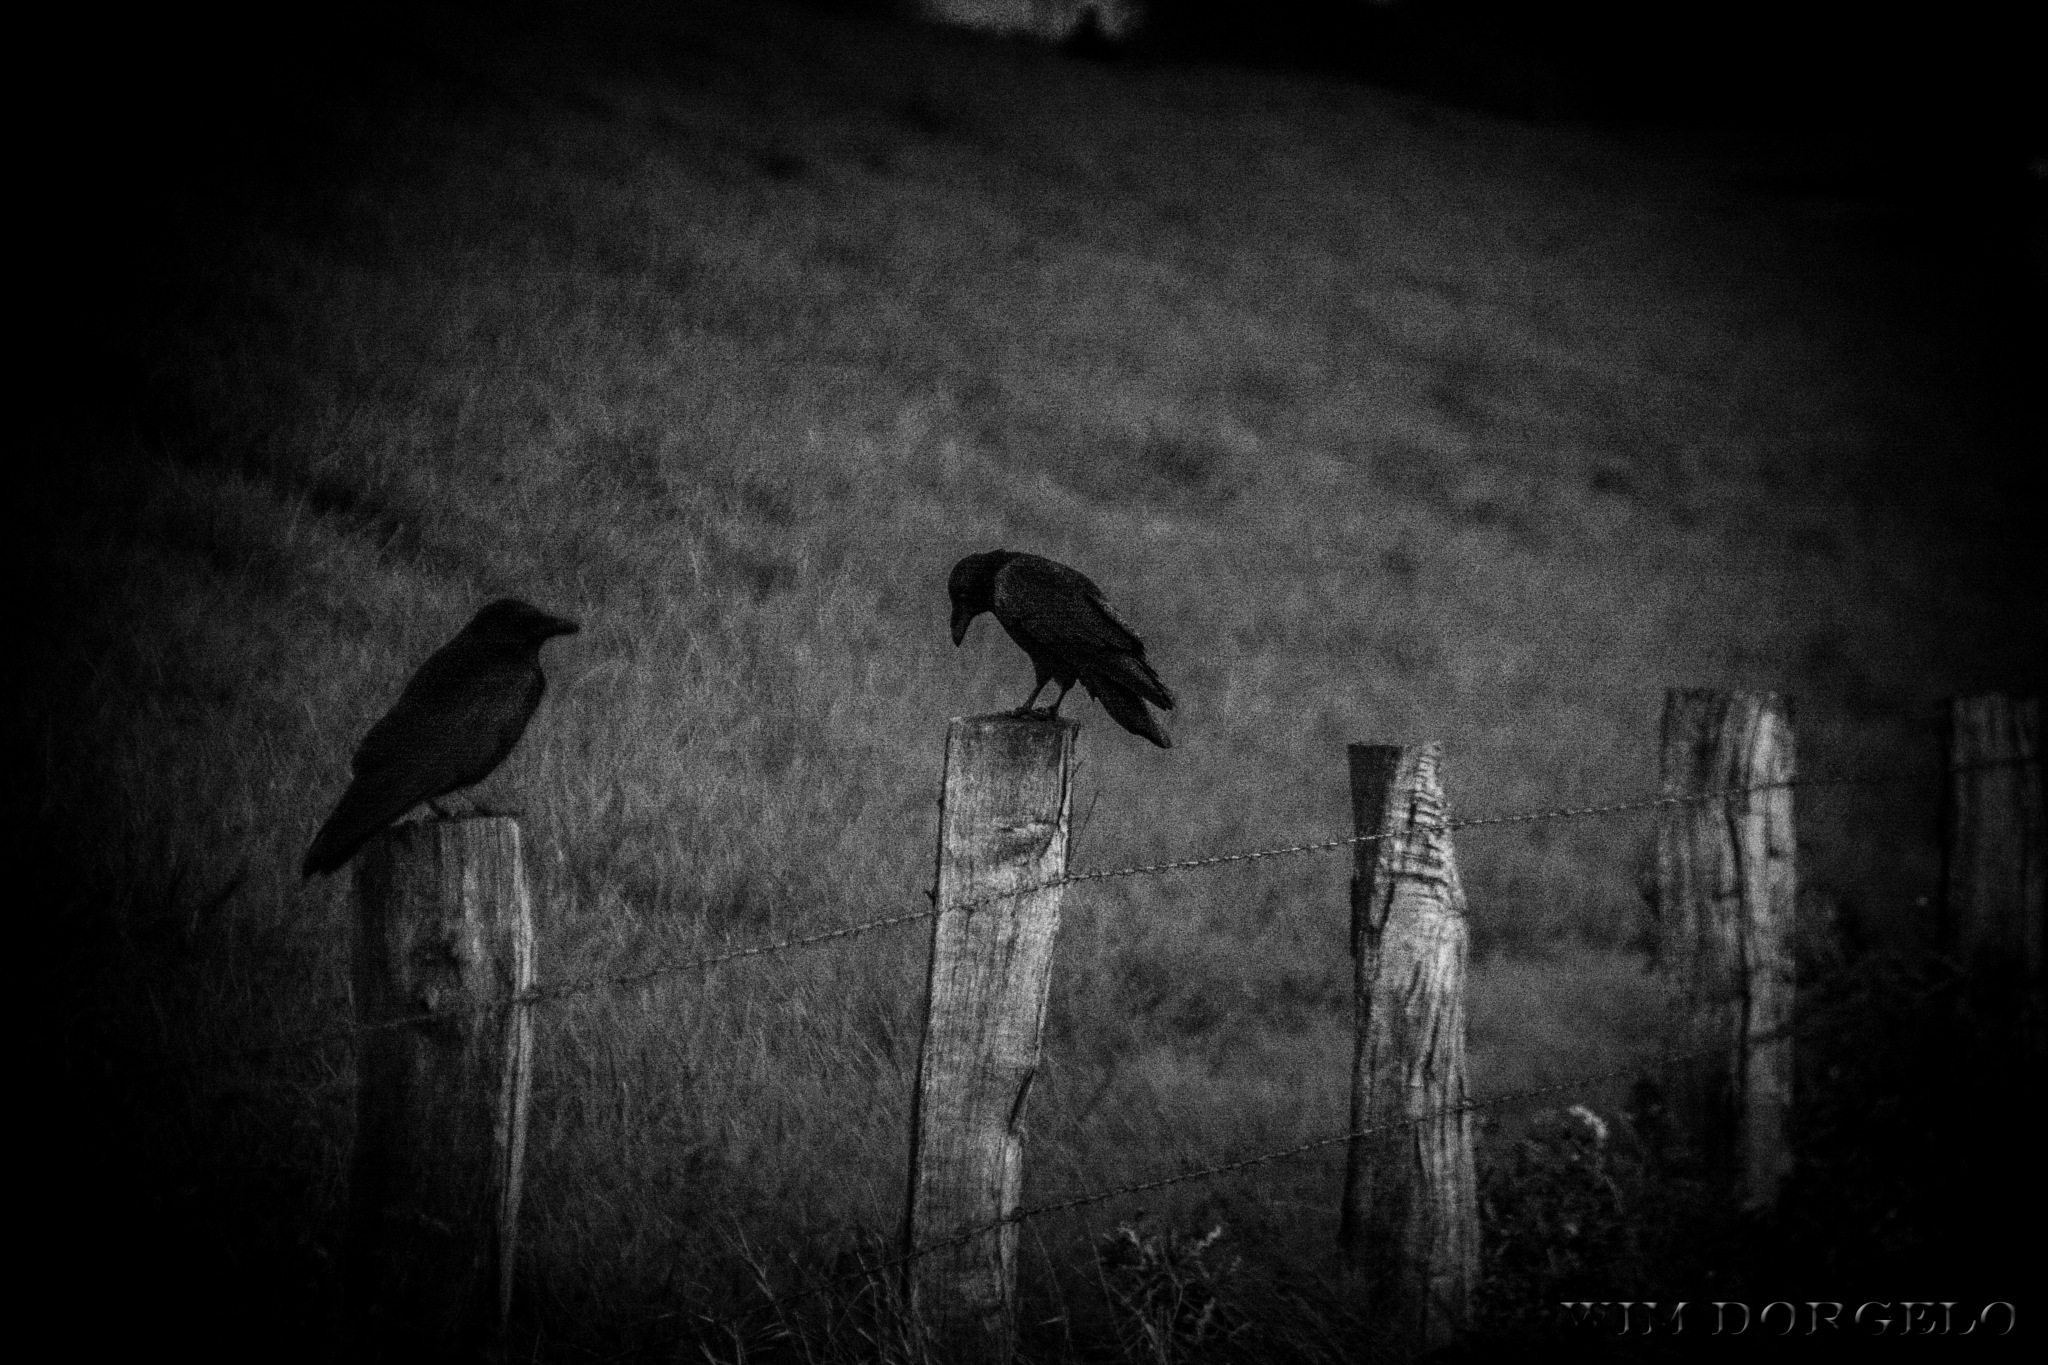 The Black Crowes by Wim Dorgelo